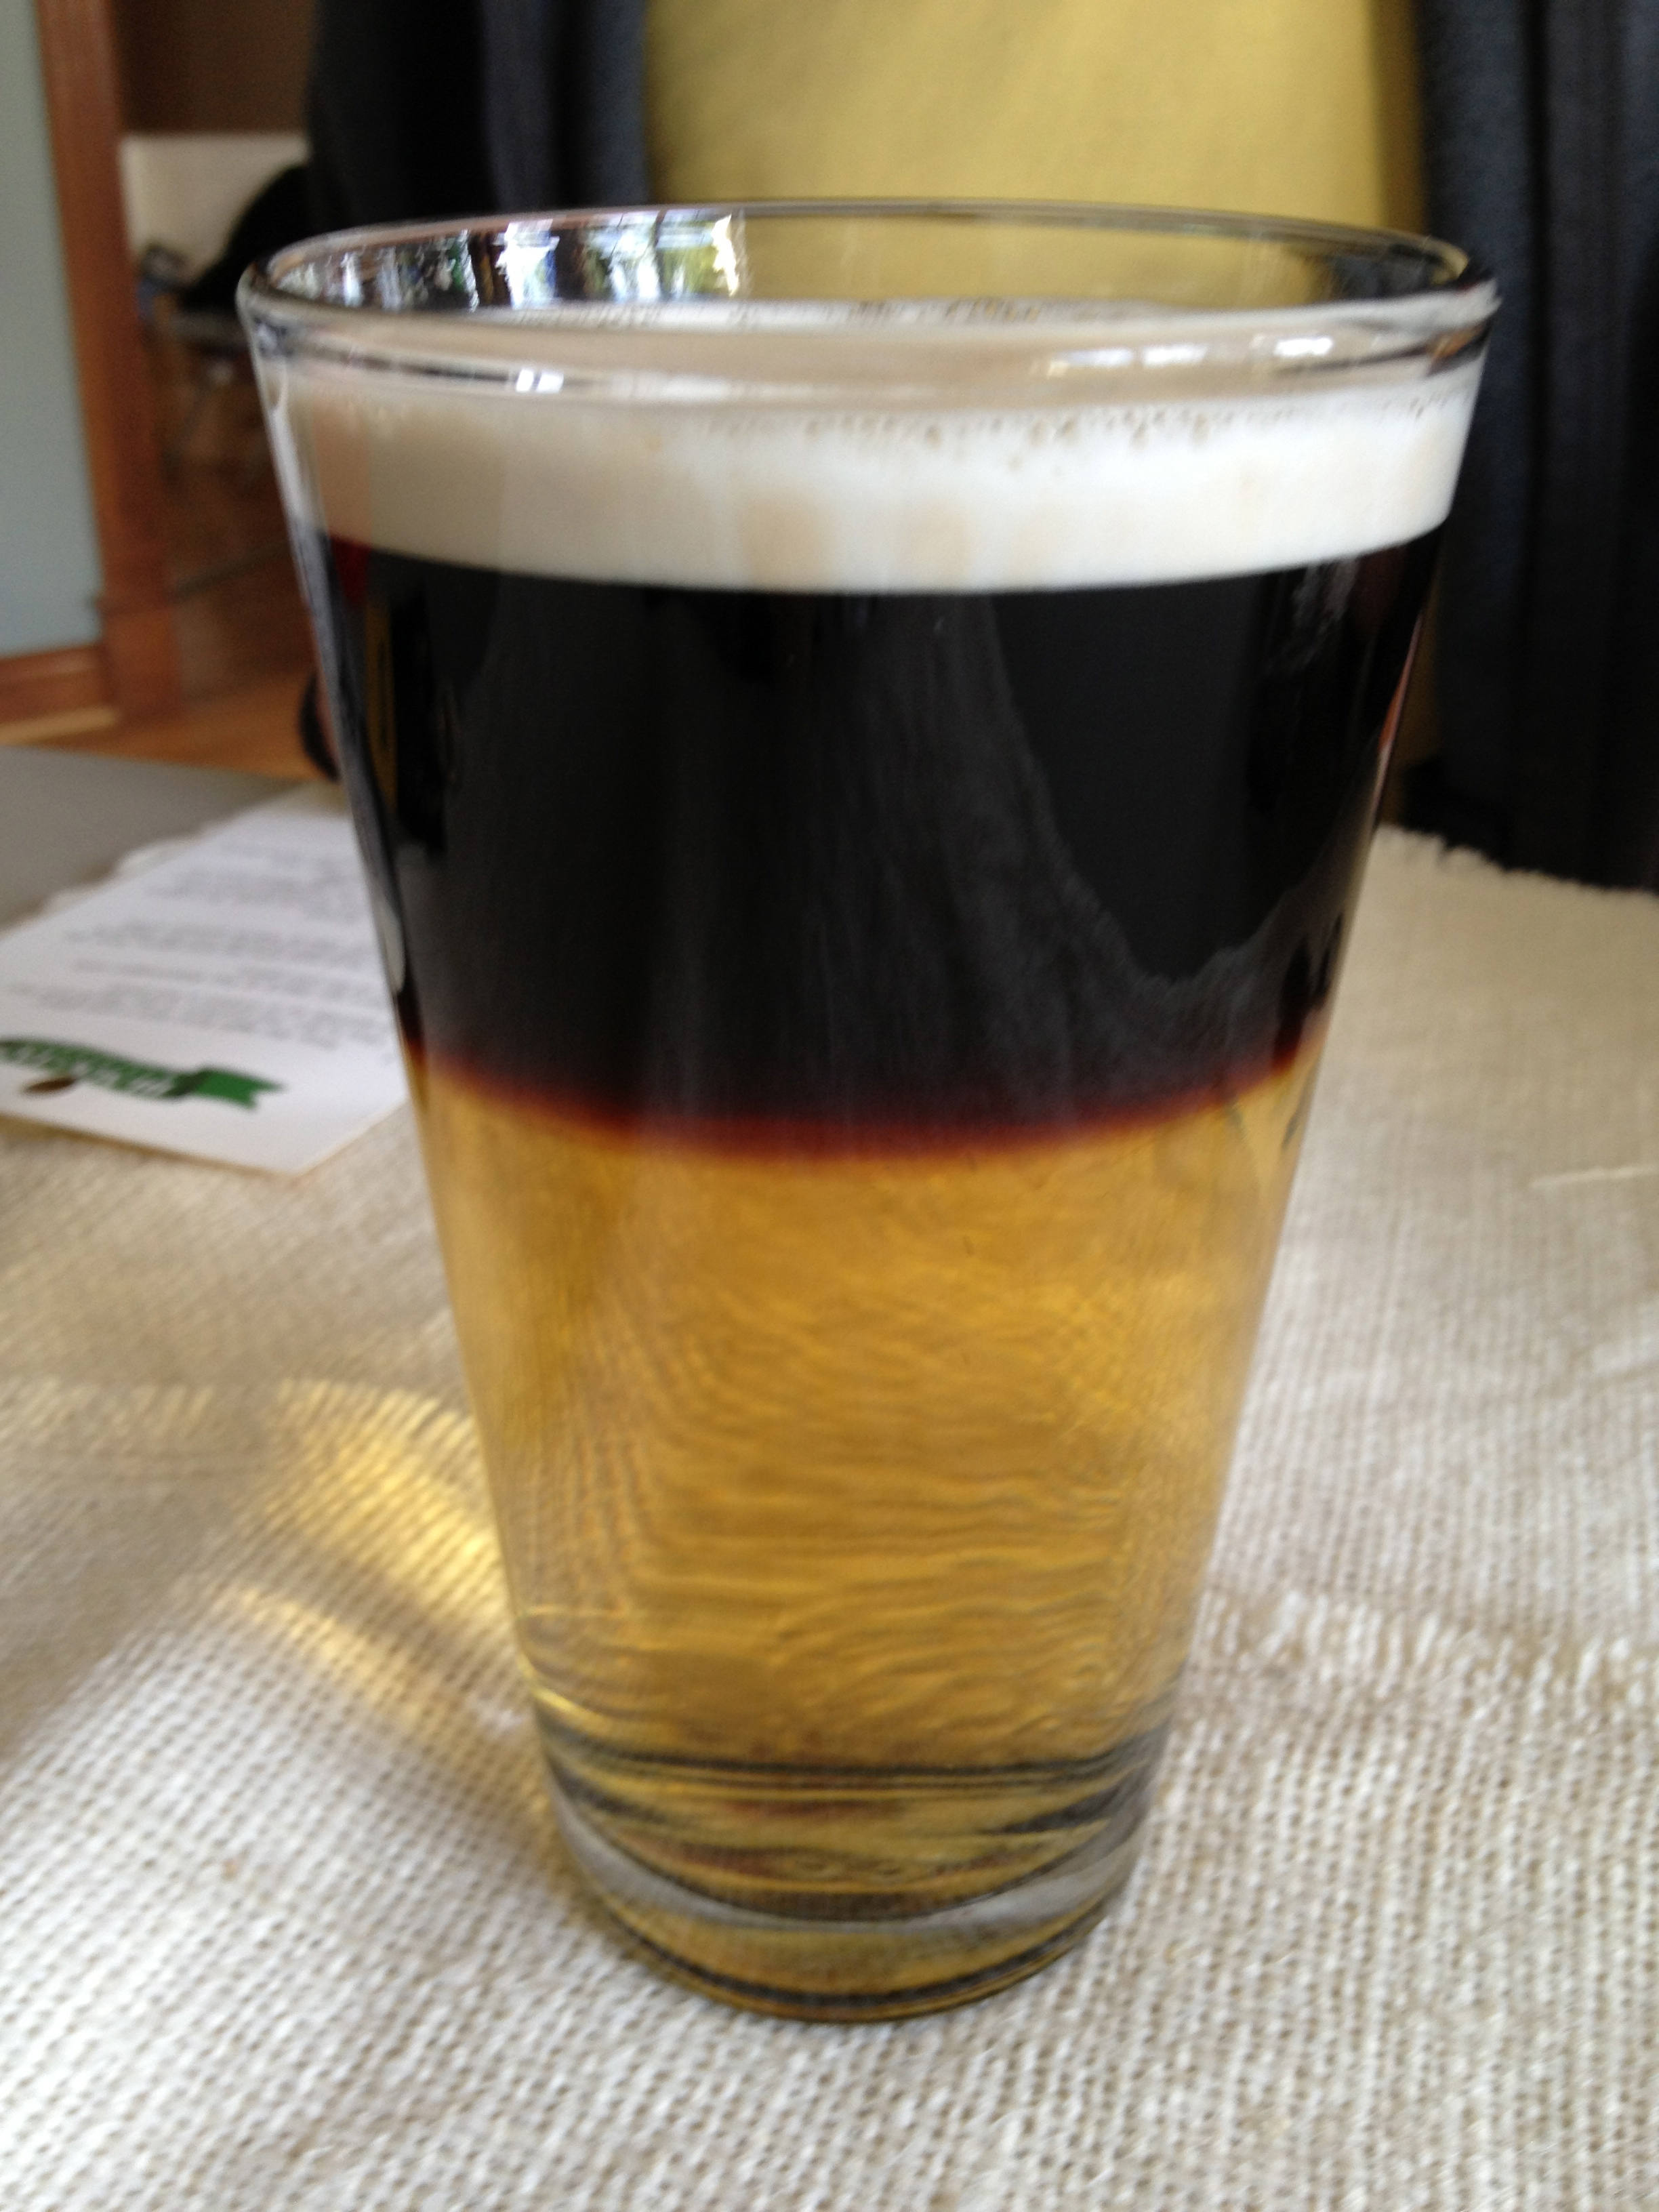 Aweinspiring Tan Made From My Own Ever Black Tan Black Tan Drink Guinness Black Tan Alcohol Drink This Is What A Black nice food Black And Tan Drink